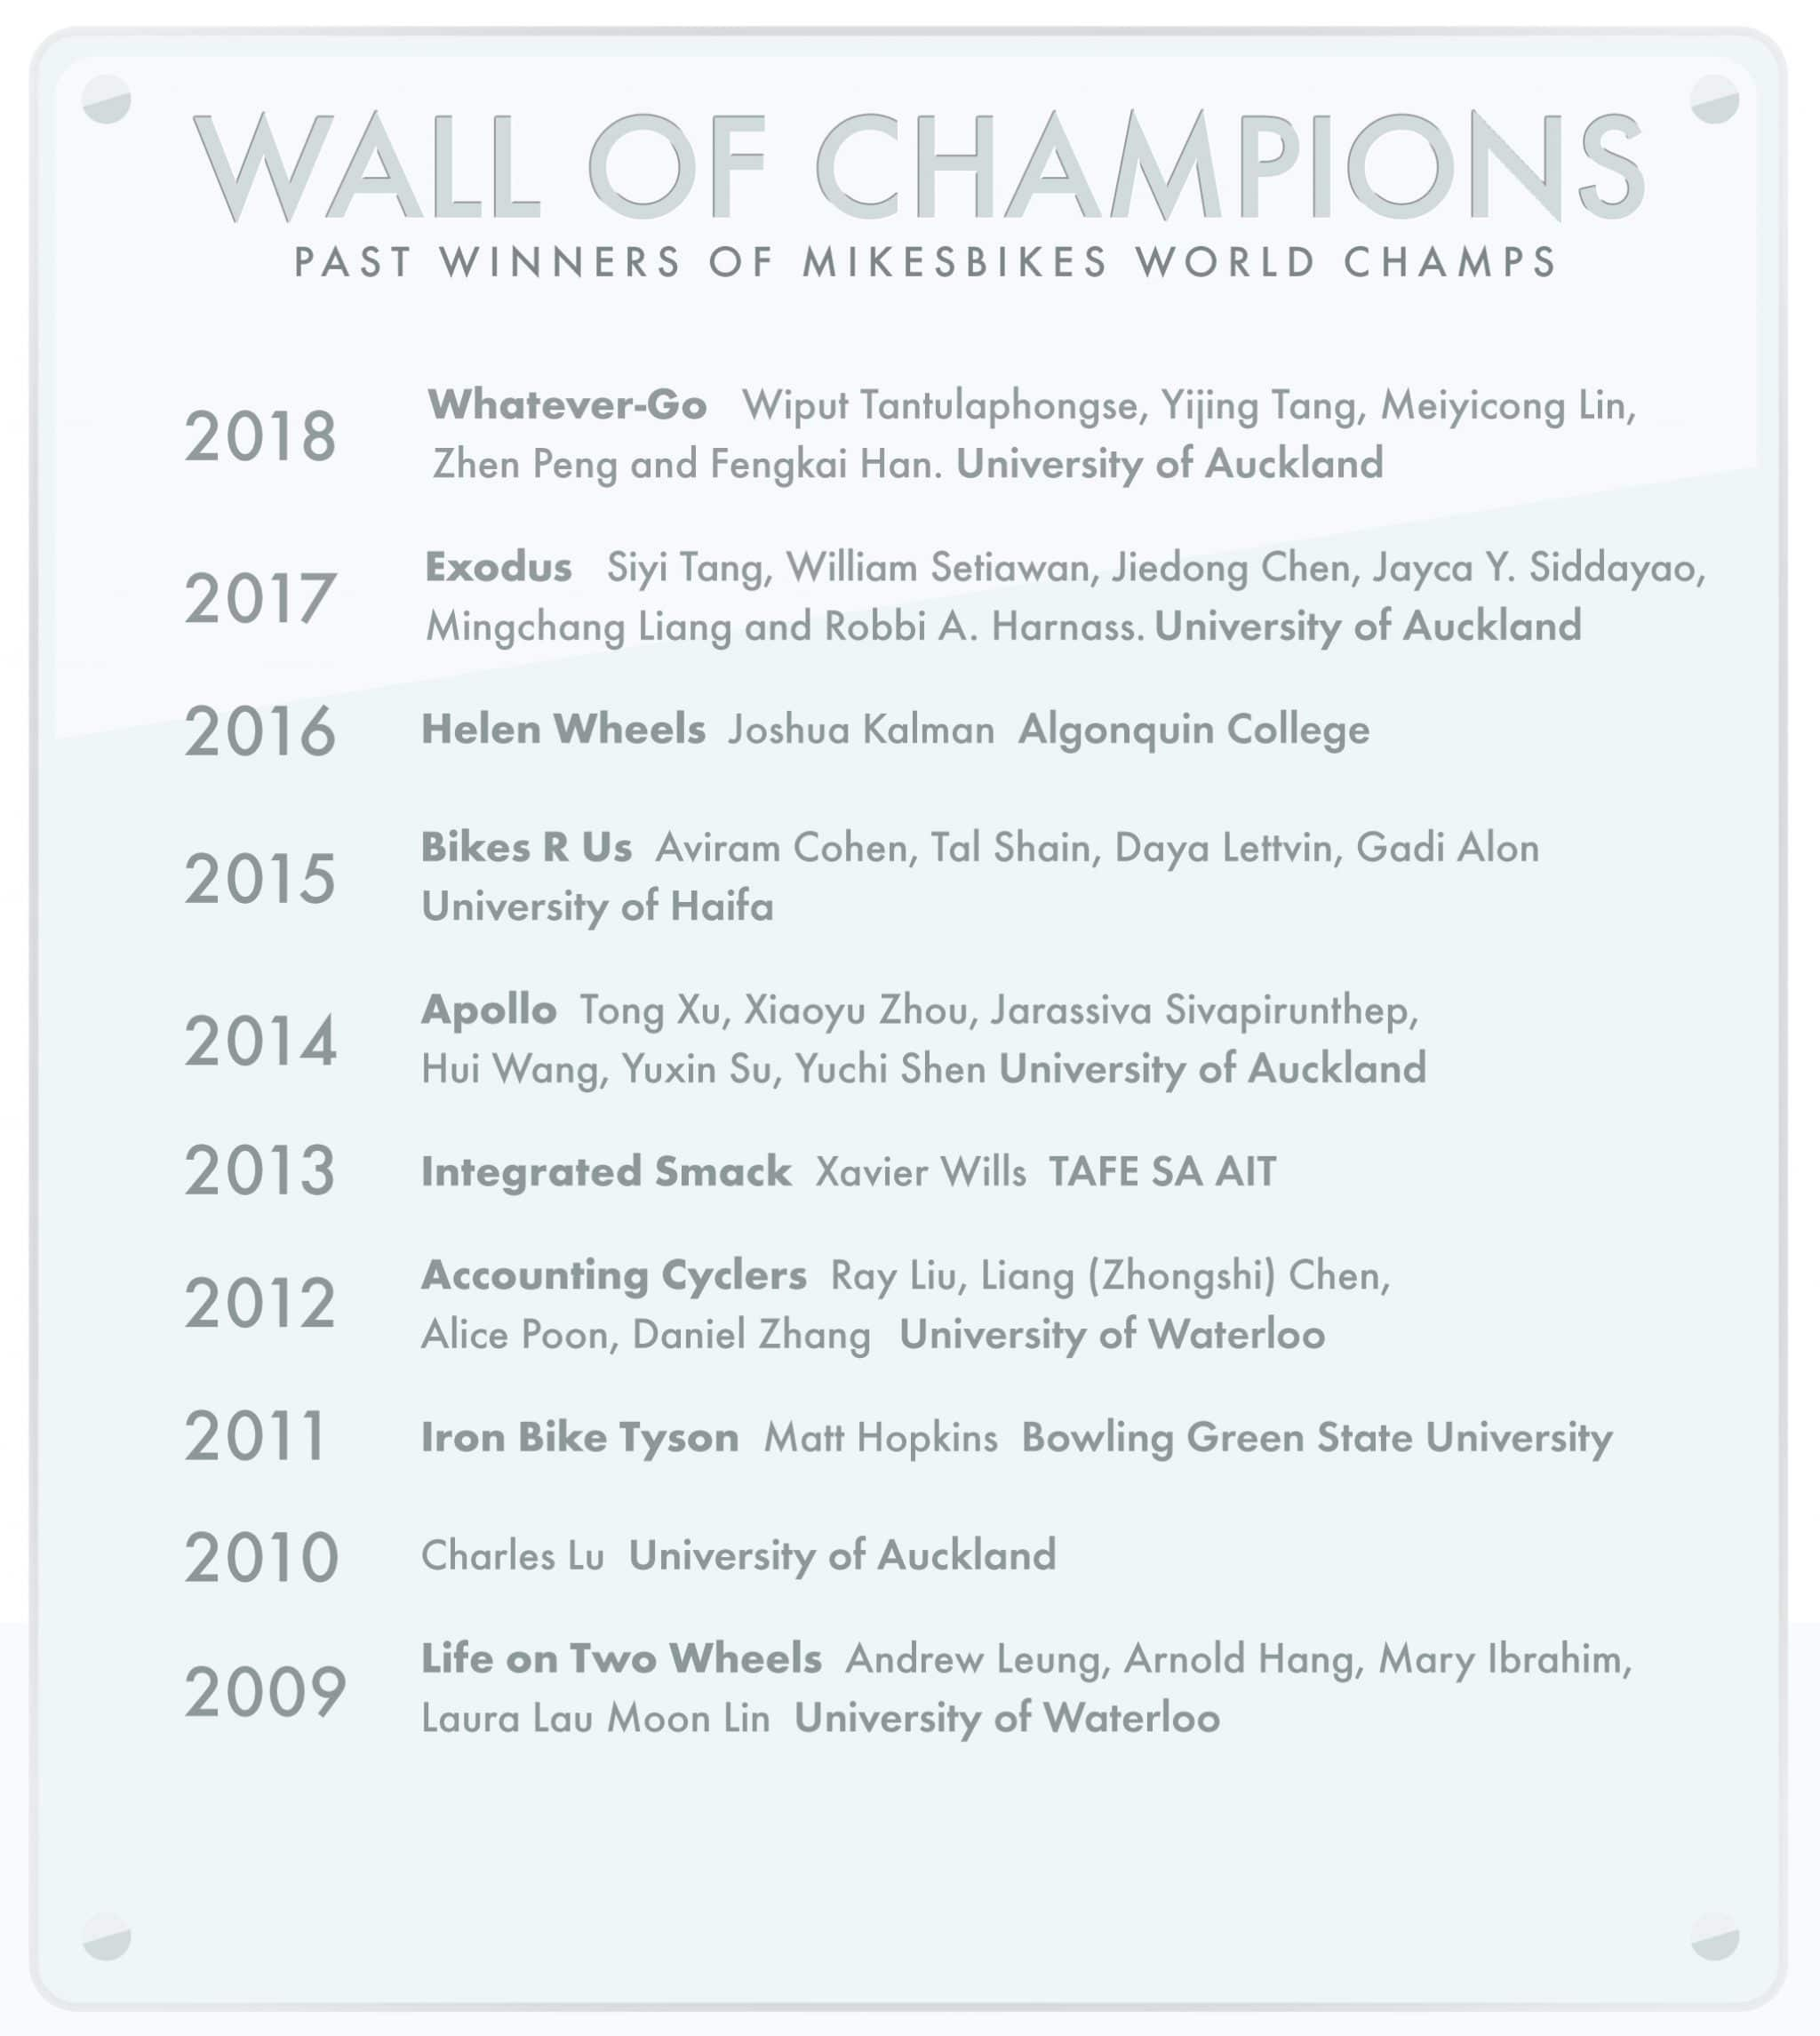 Wall of Champions 2018